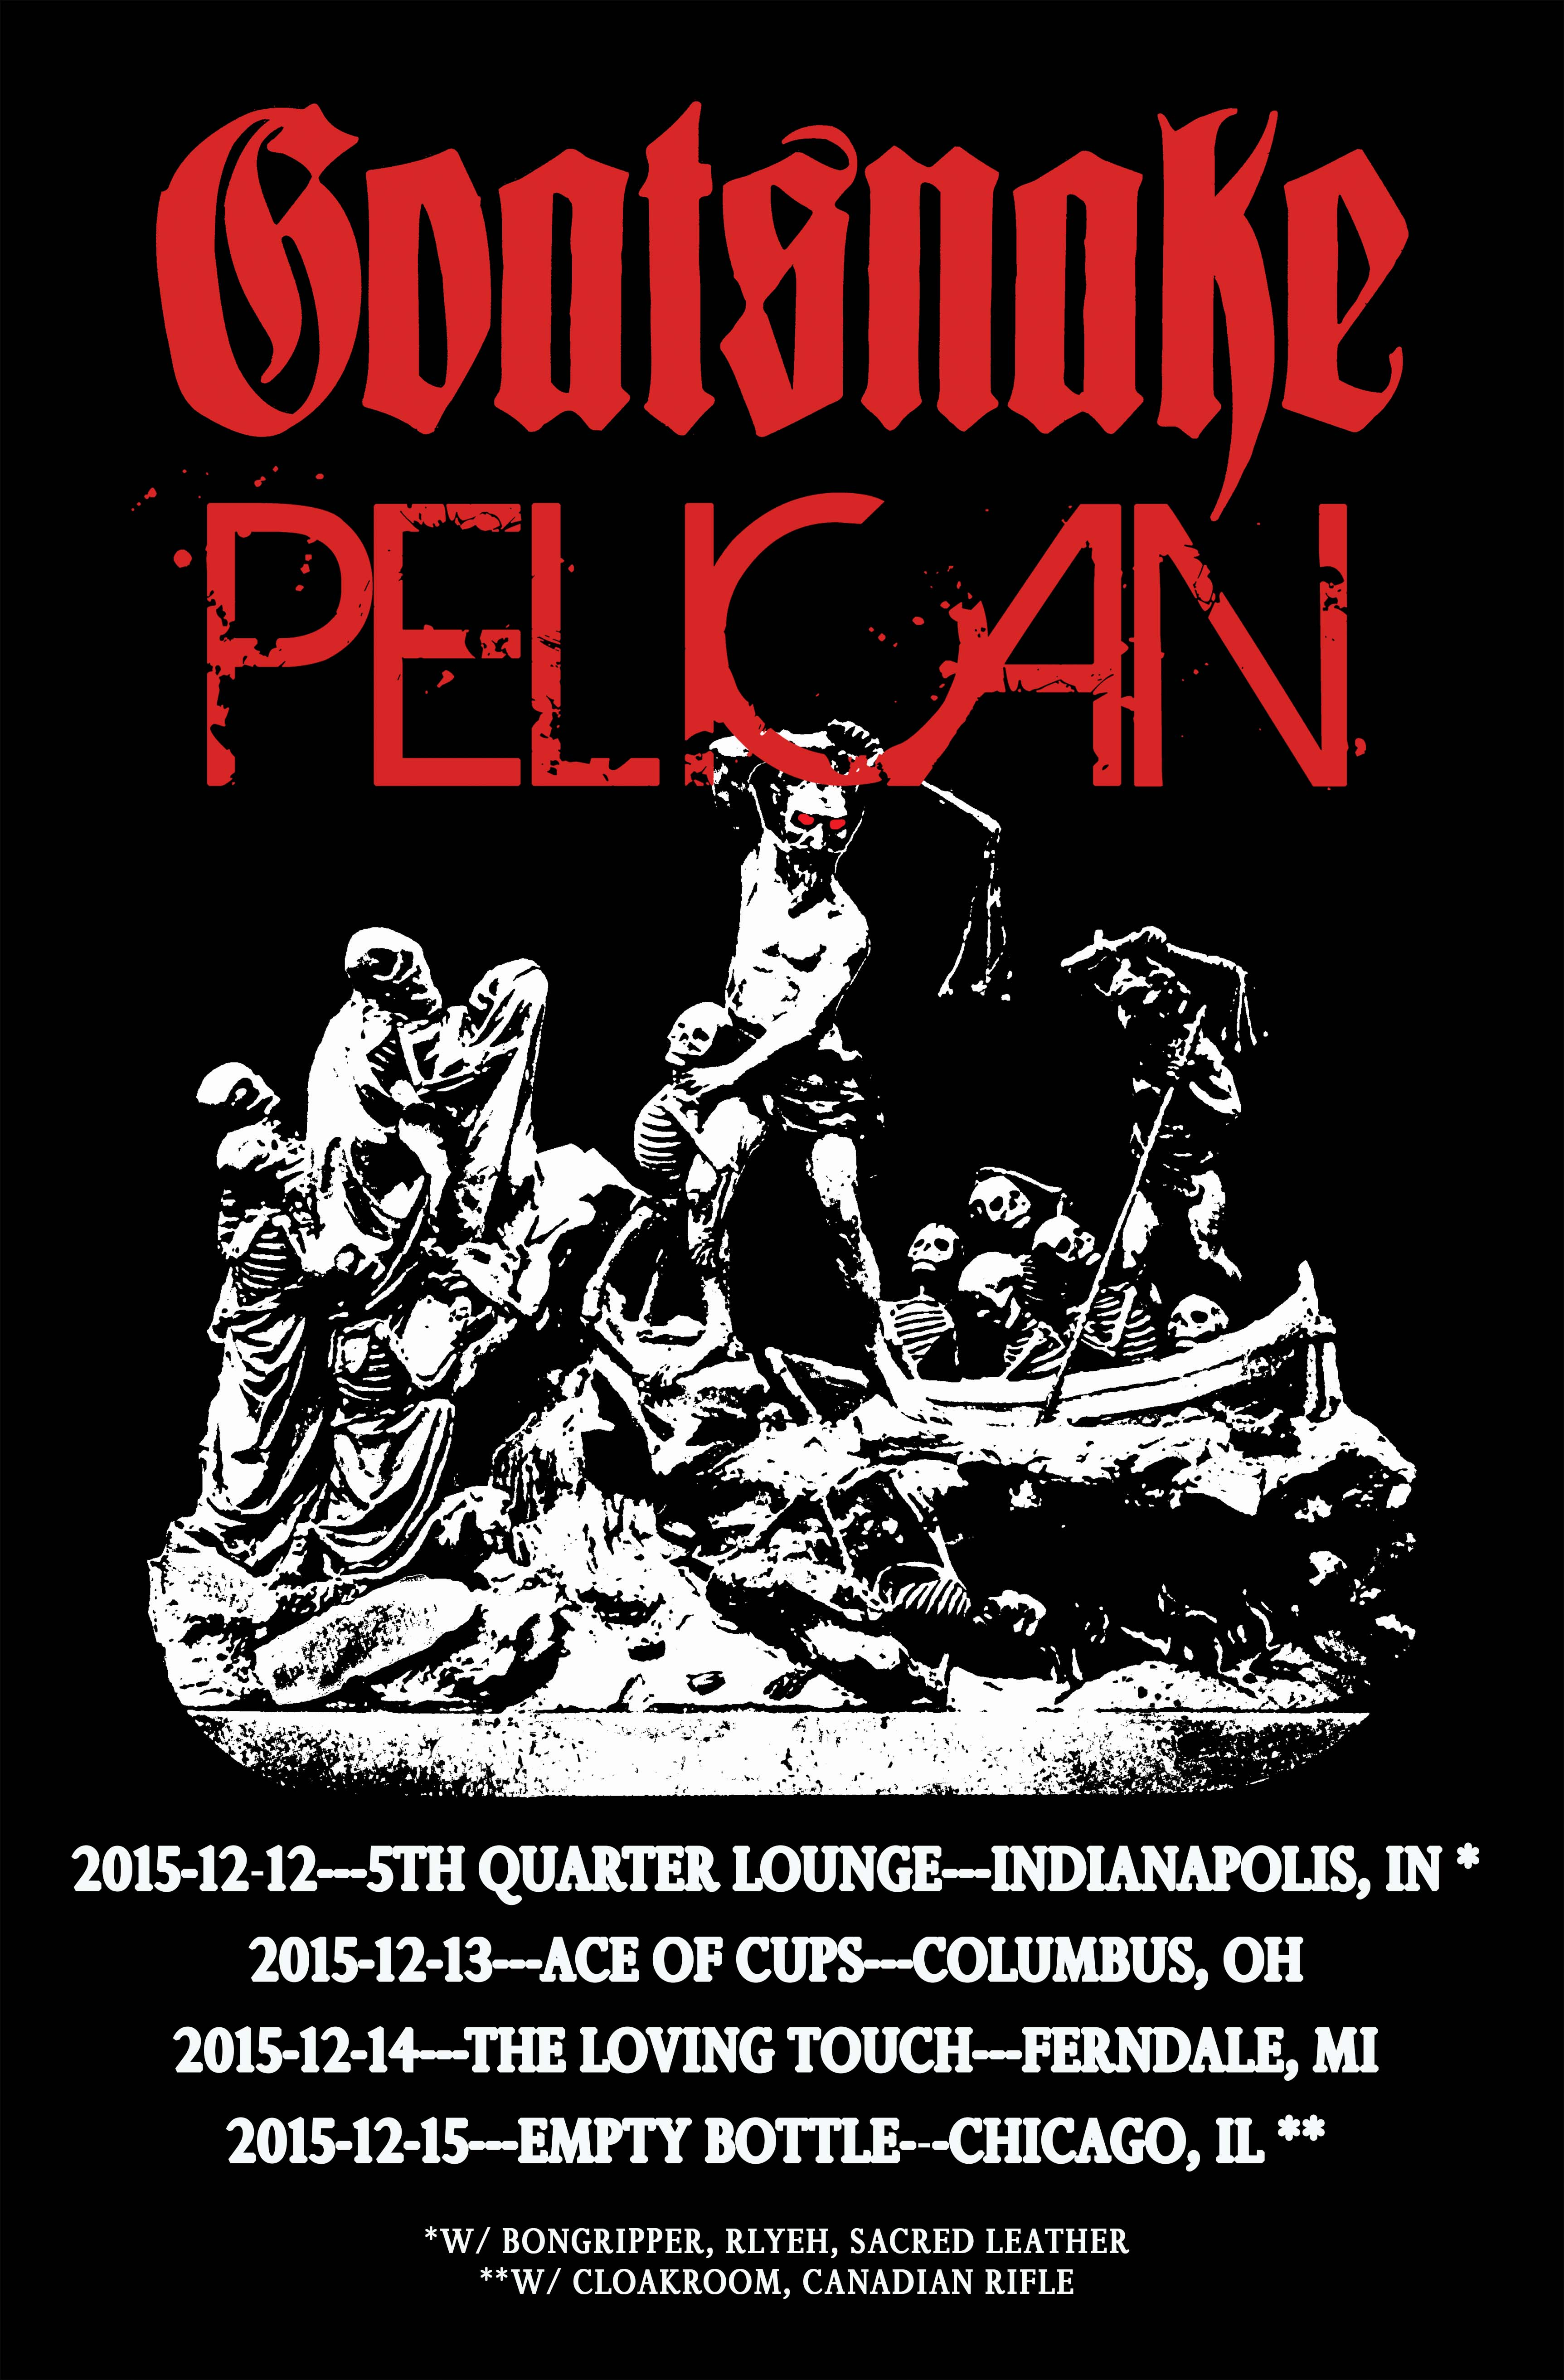 Goatsnake -Pelican Midwest poster